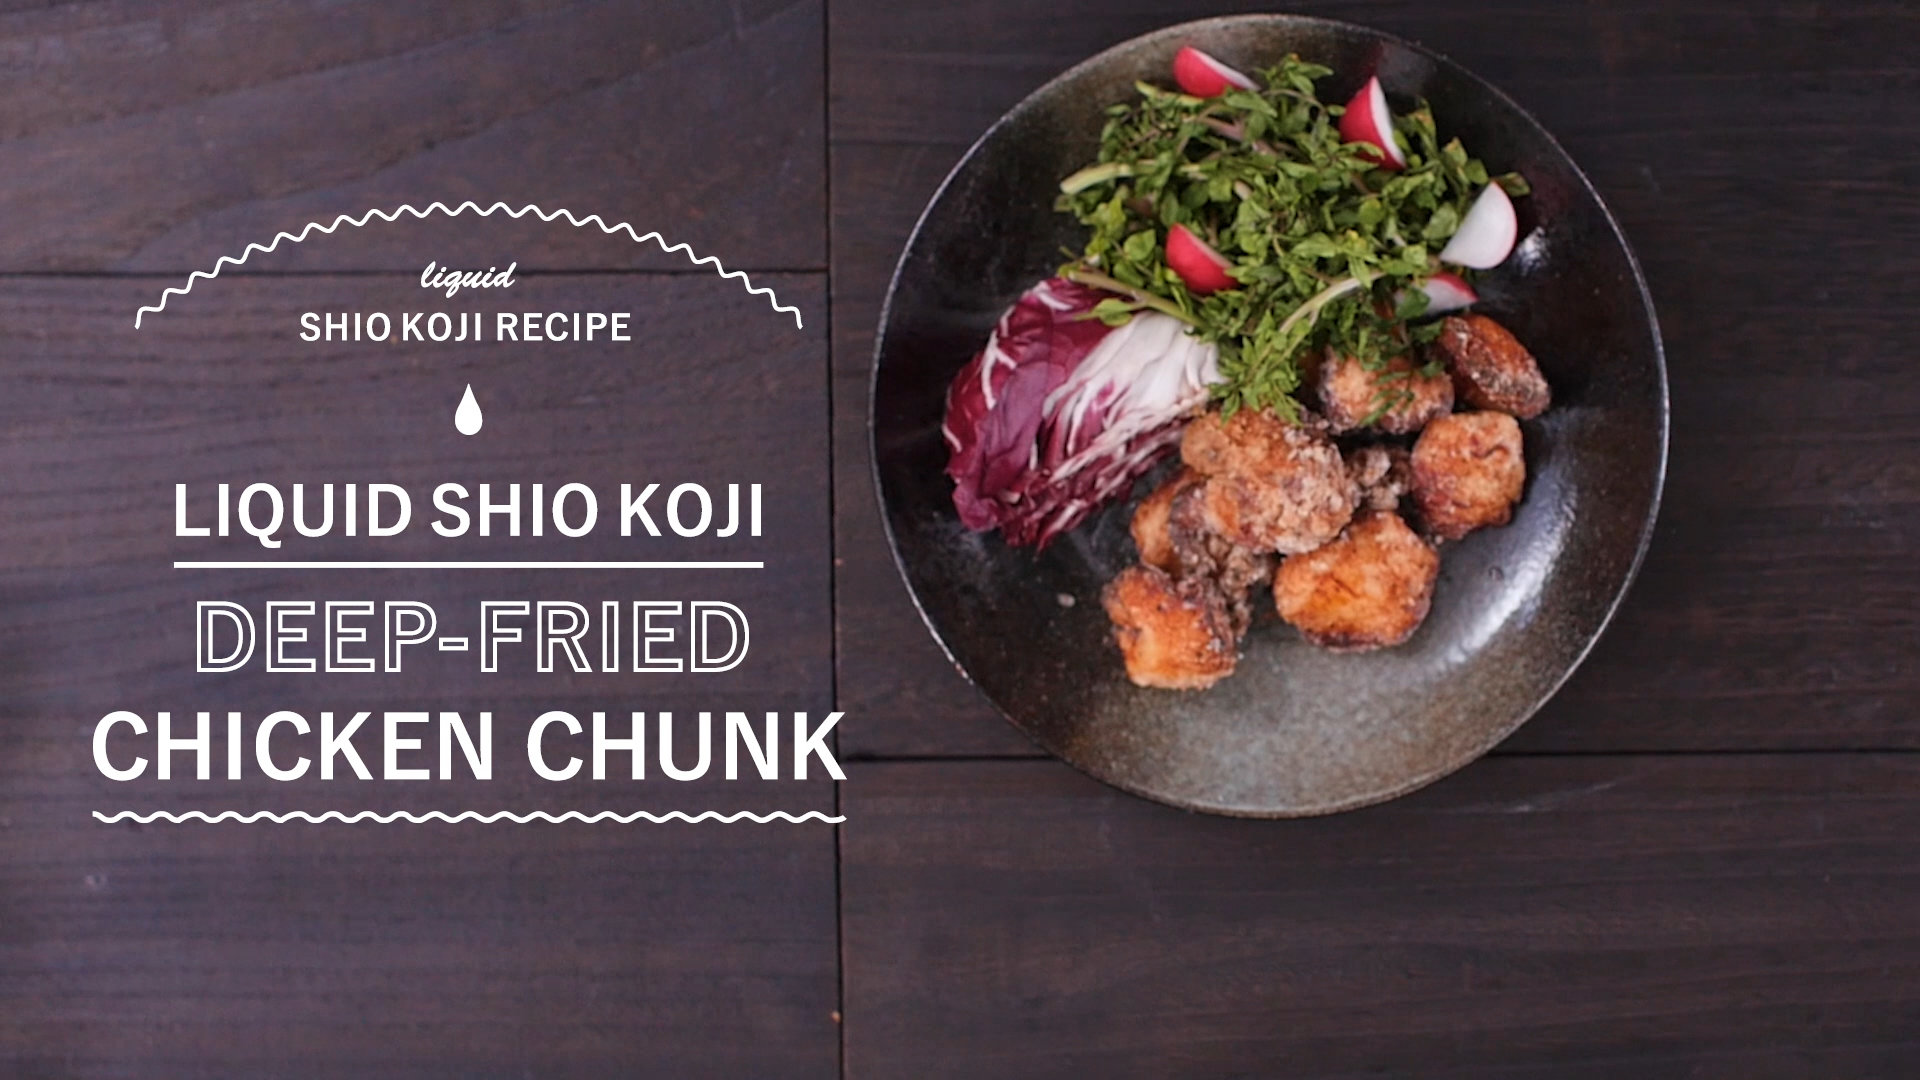 【LIQUID SHIO KOJI RECIPE】all